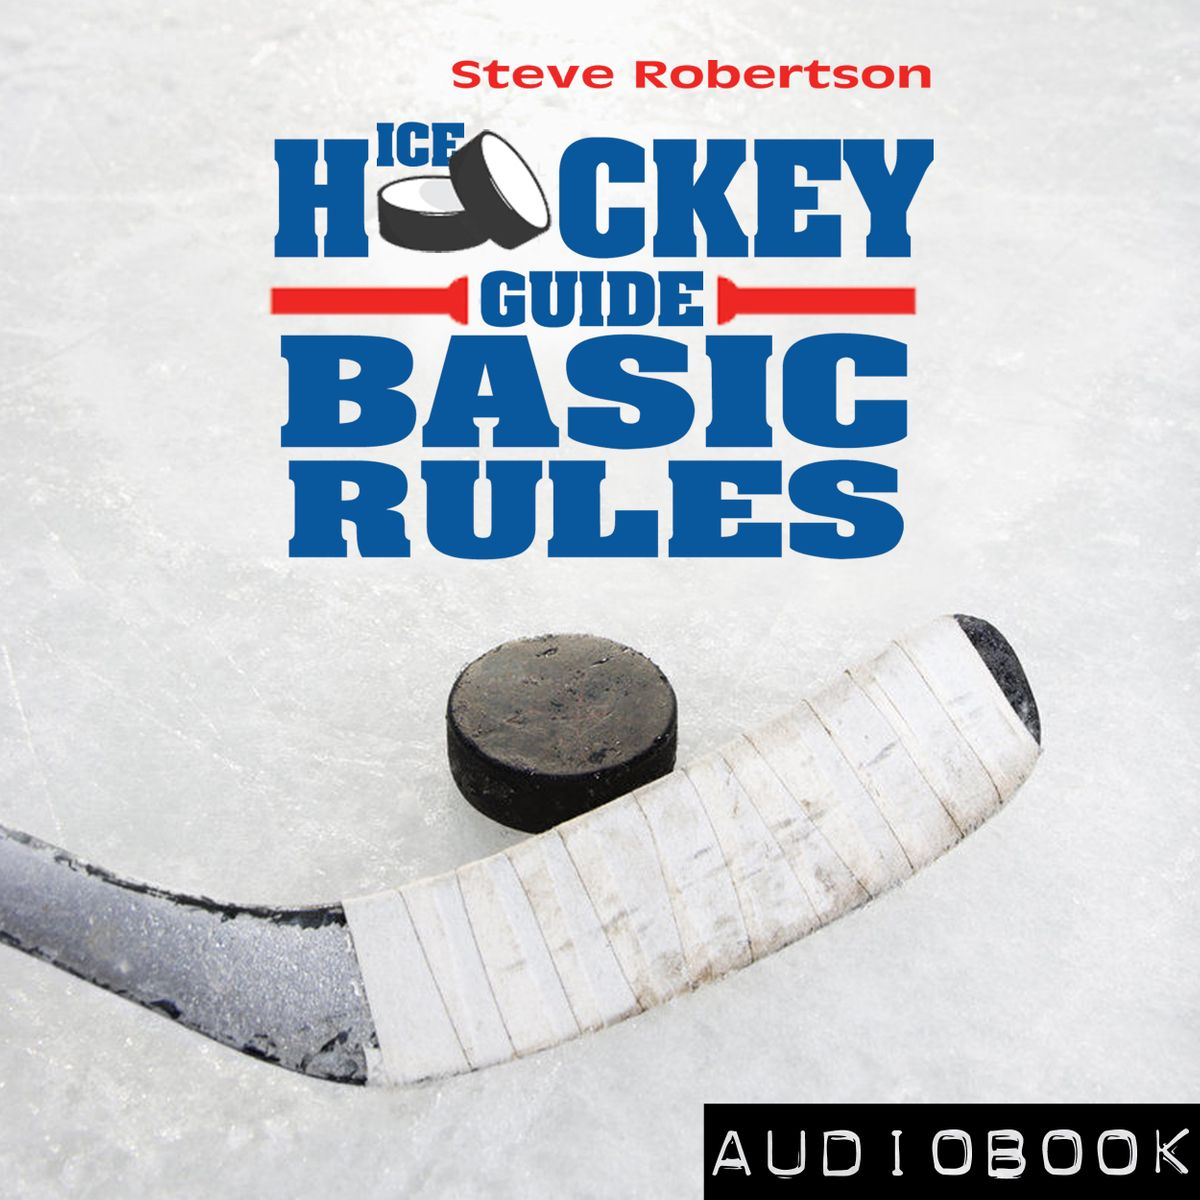 Ice Hockey Guide Basic Rules - Audiobook